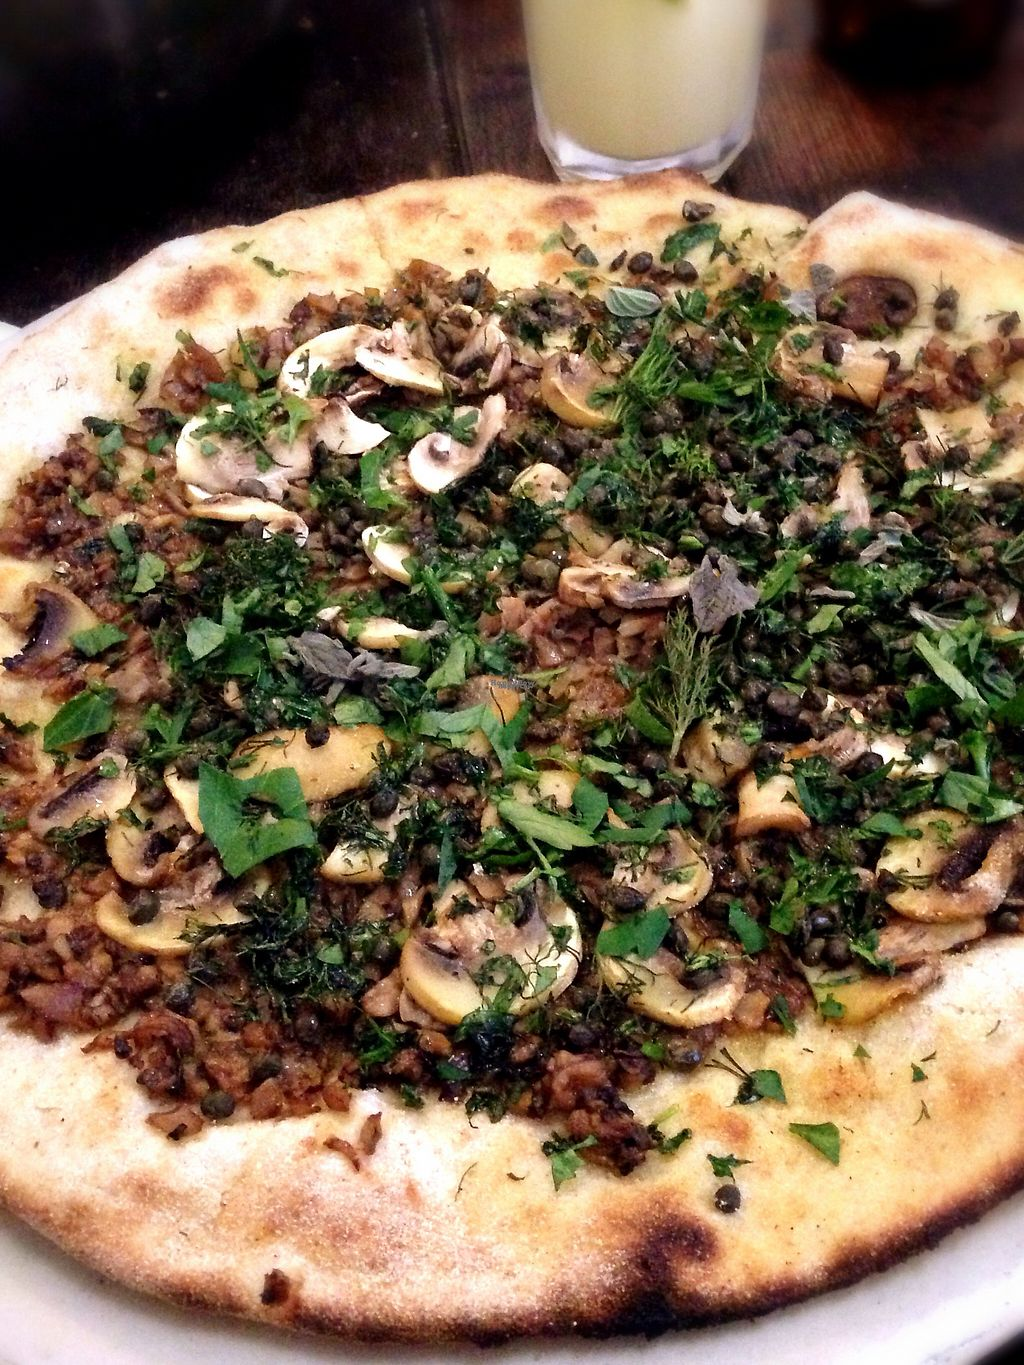 "Photo of Castle Farm Cafe  by <a href=""/members/profile/FranMcgarryArtist"">FranMcgarryArtist</a> <br/>Mushroom & Caper Vegan Pizza <br/> November 28, 2016  - <a href='/contact/abuse/image/76073/195274'>Report</a>"